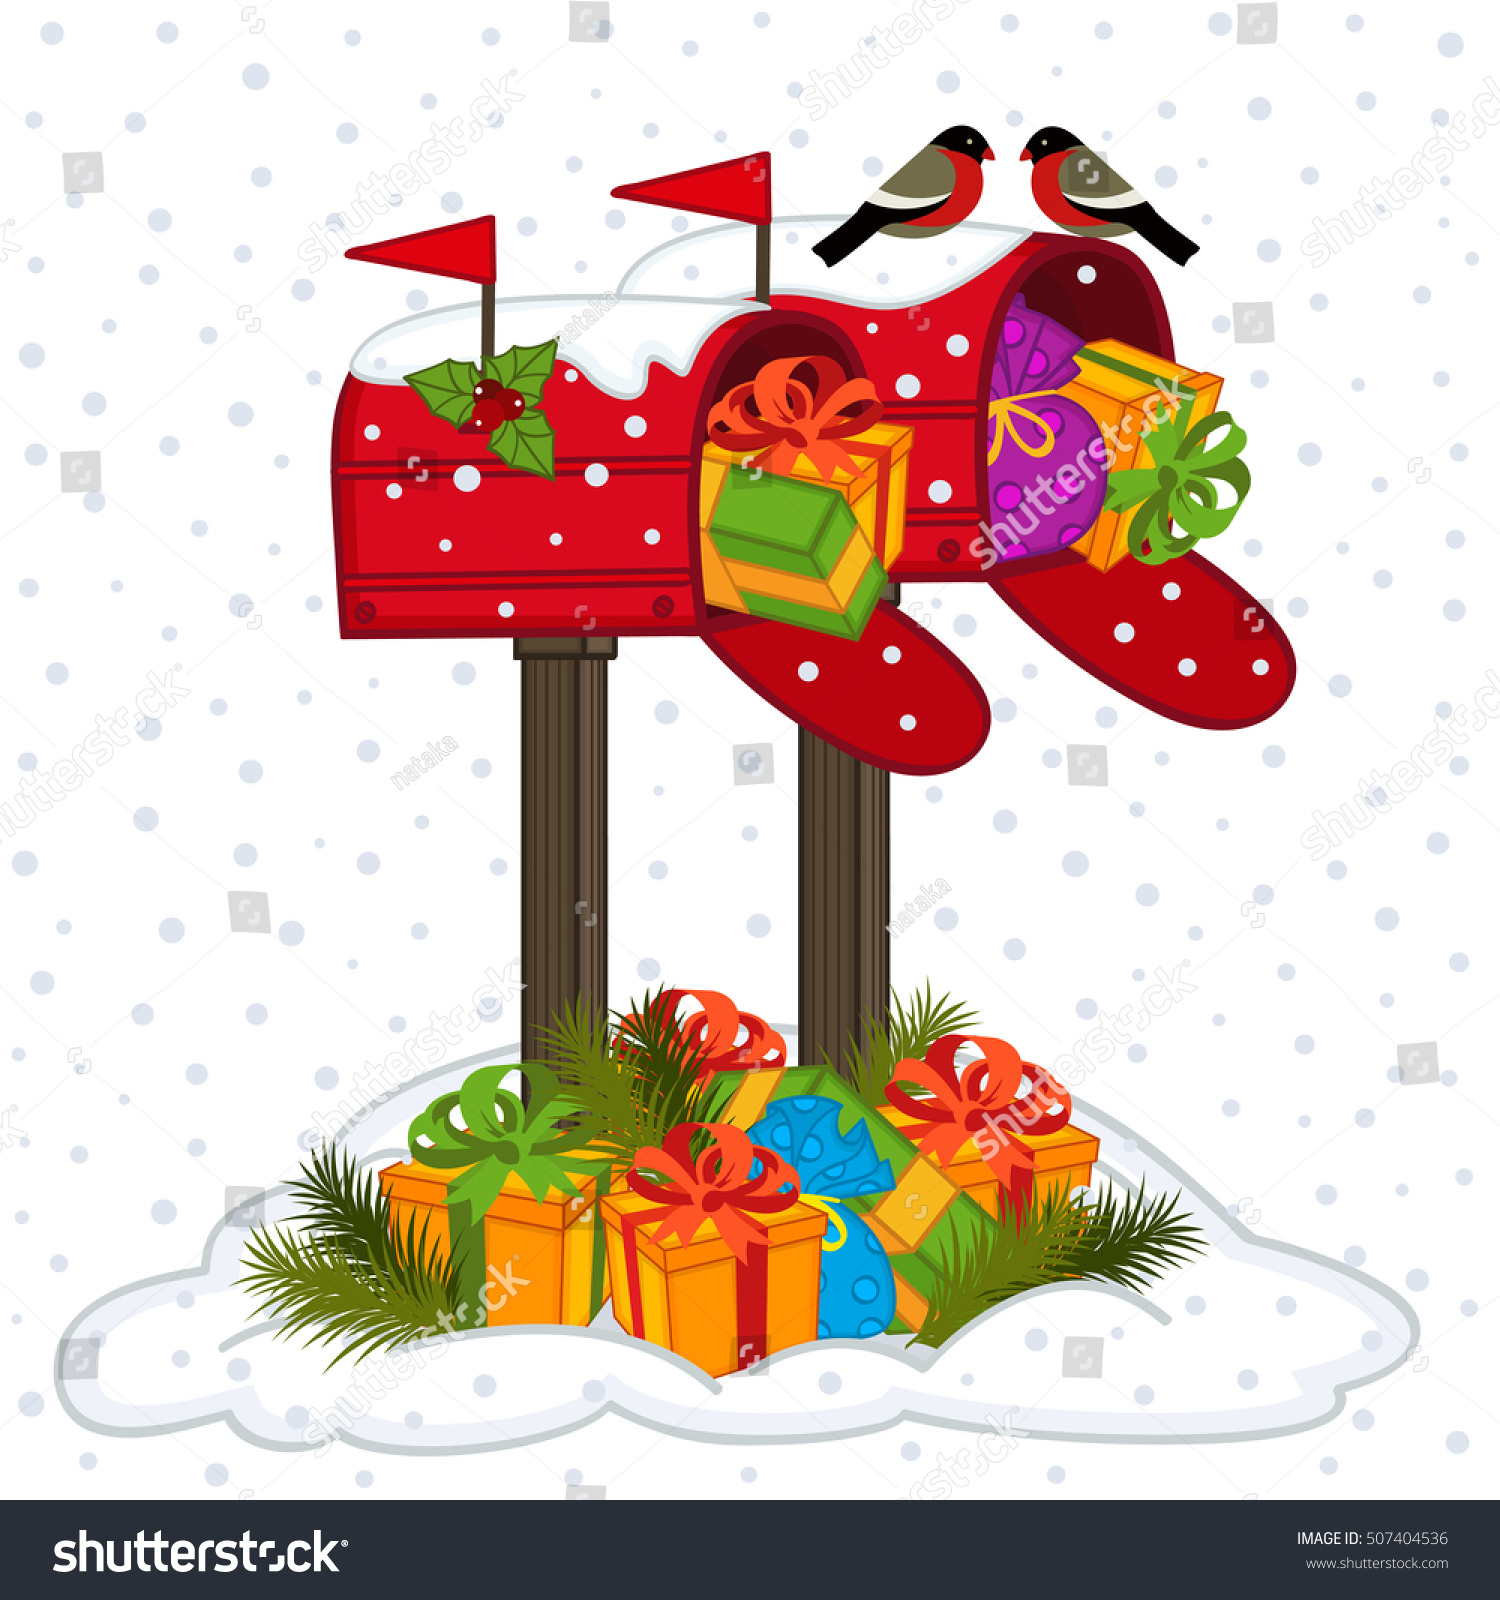 Mailbox Christmas Gifts Vector Illustration Eps Stock Vector.